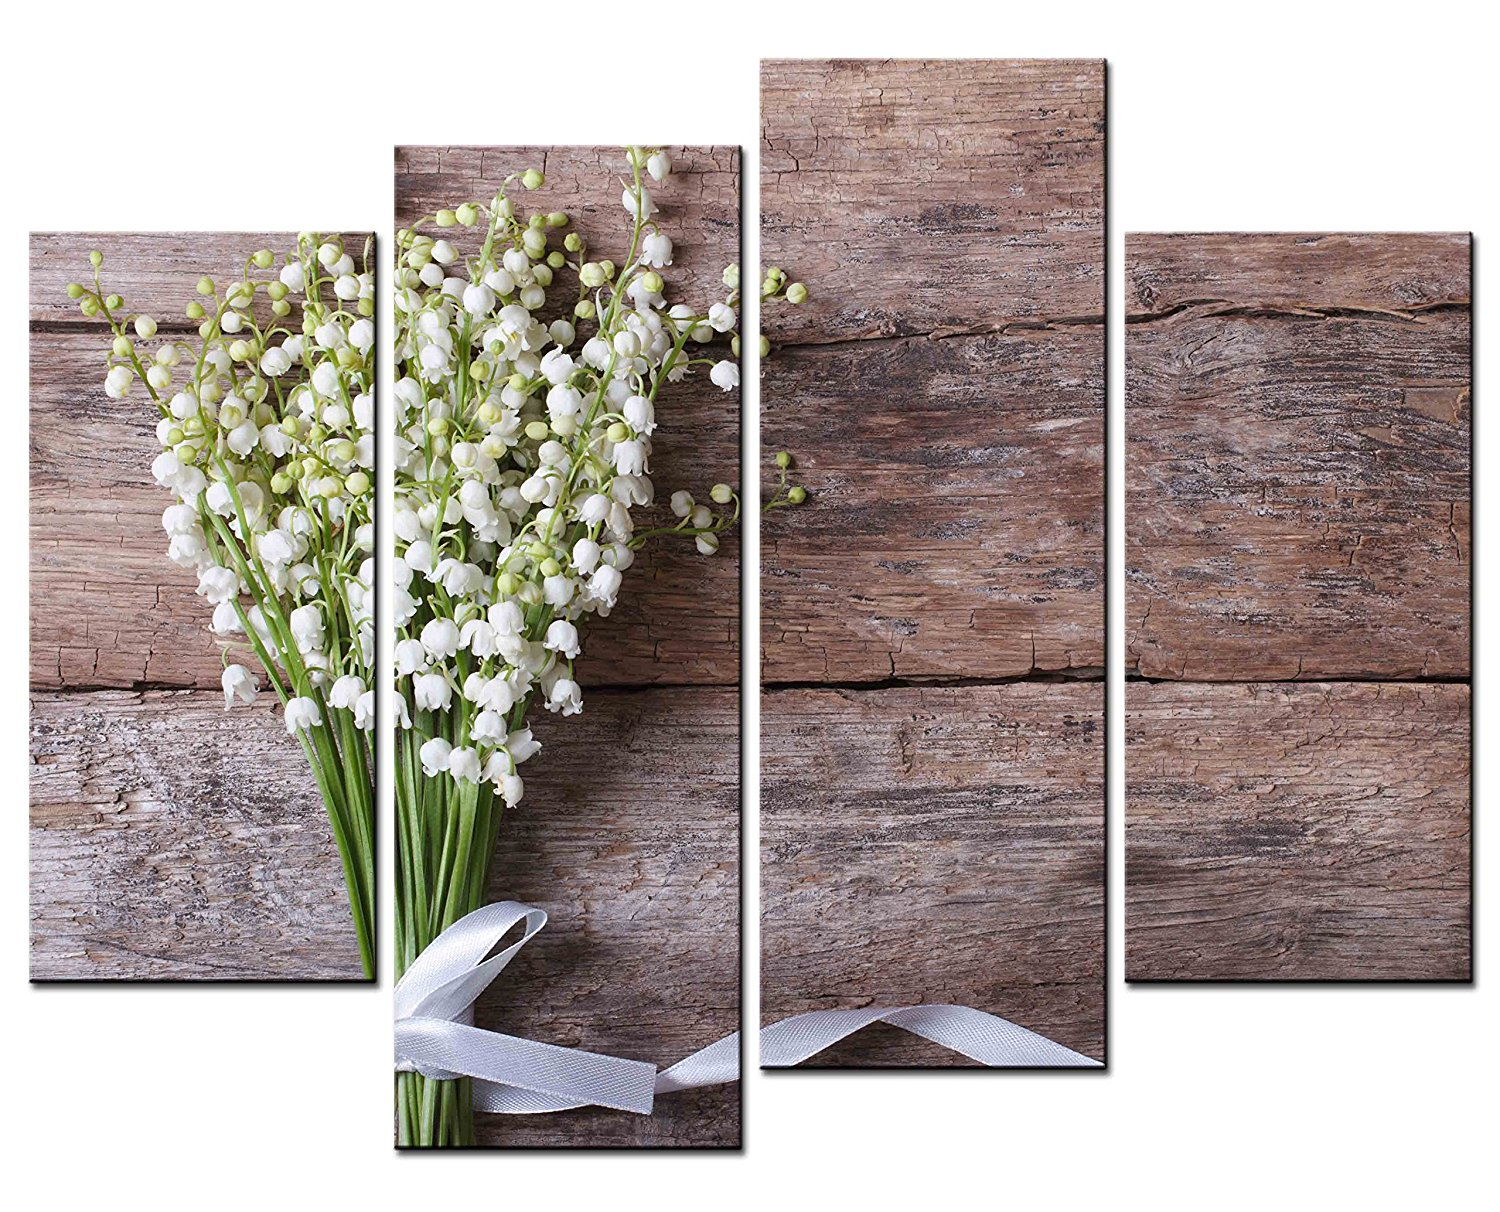 Flower Paintings Wall Art Lilies of the Valley on Wooden Background 4 Panel  Picture Print on - Online Get Cheap Painting Wood Paneling -Aliexpress.com Alibaba